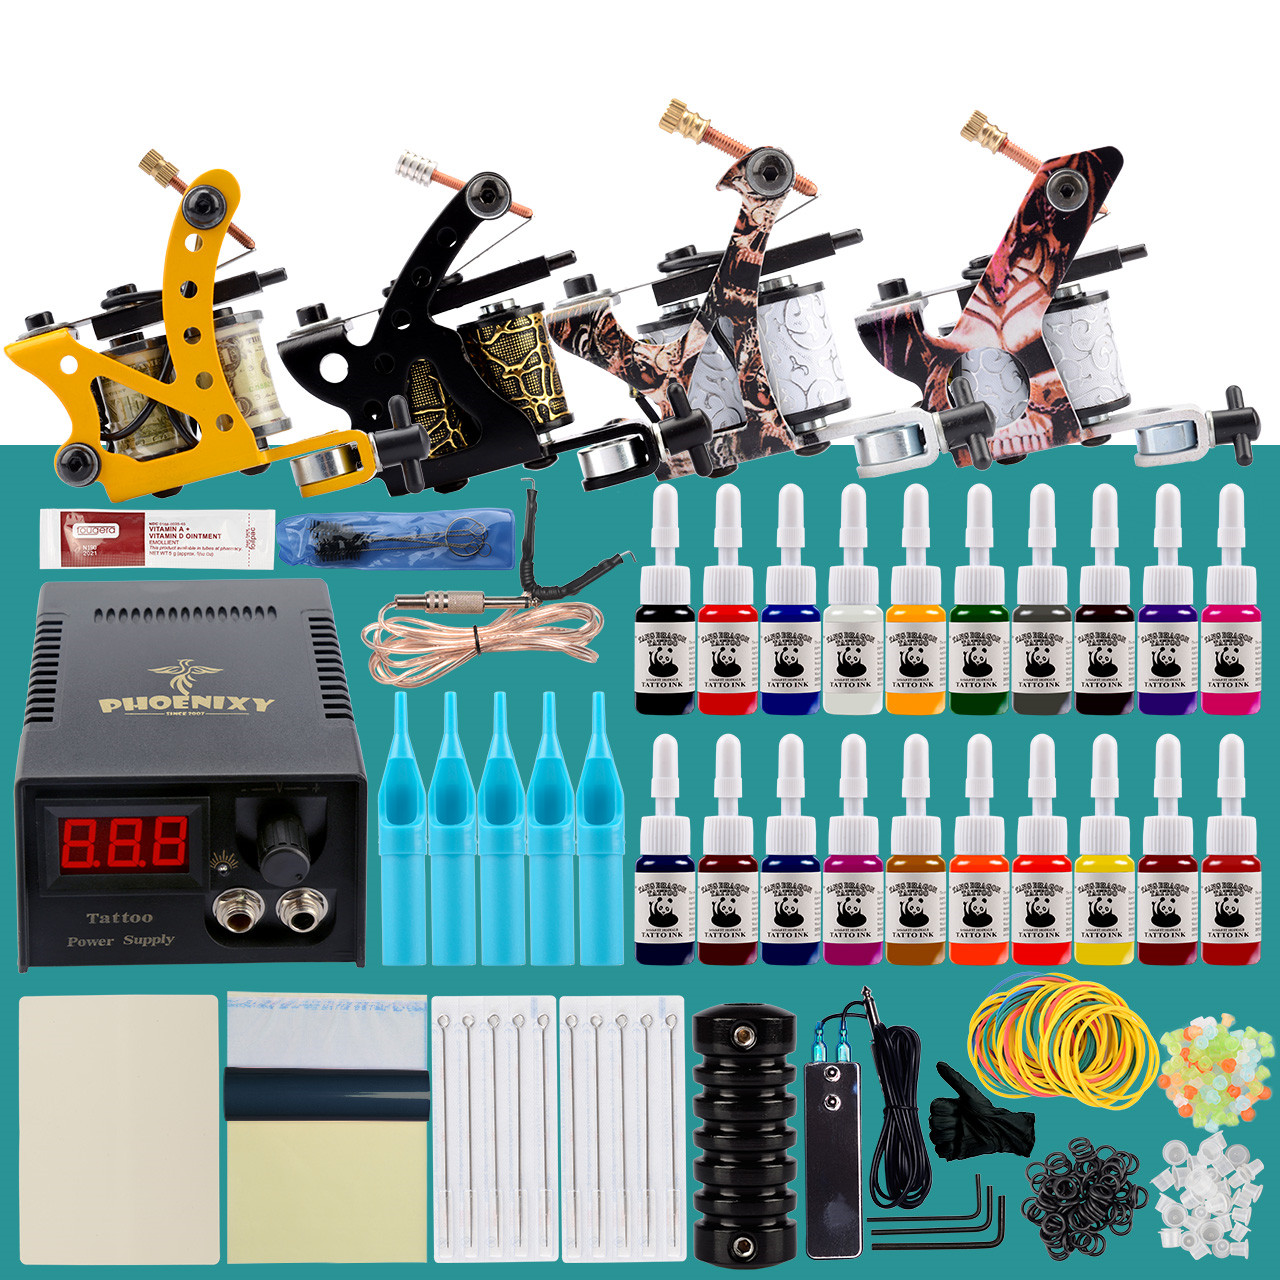 Professional Tattoo Kit Tattoo Machines Set Coil Guns LCD Power Supply Permanent Ink Tattoo Equipment Makeup Complete Tattoo Set